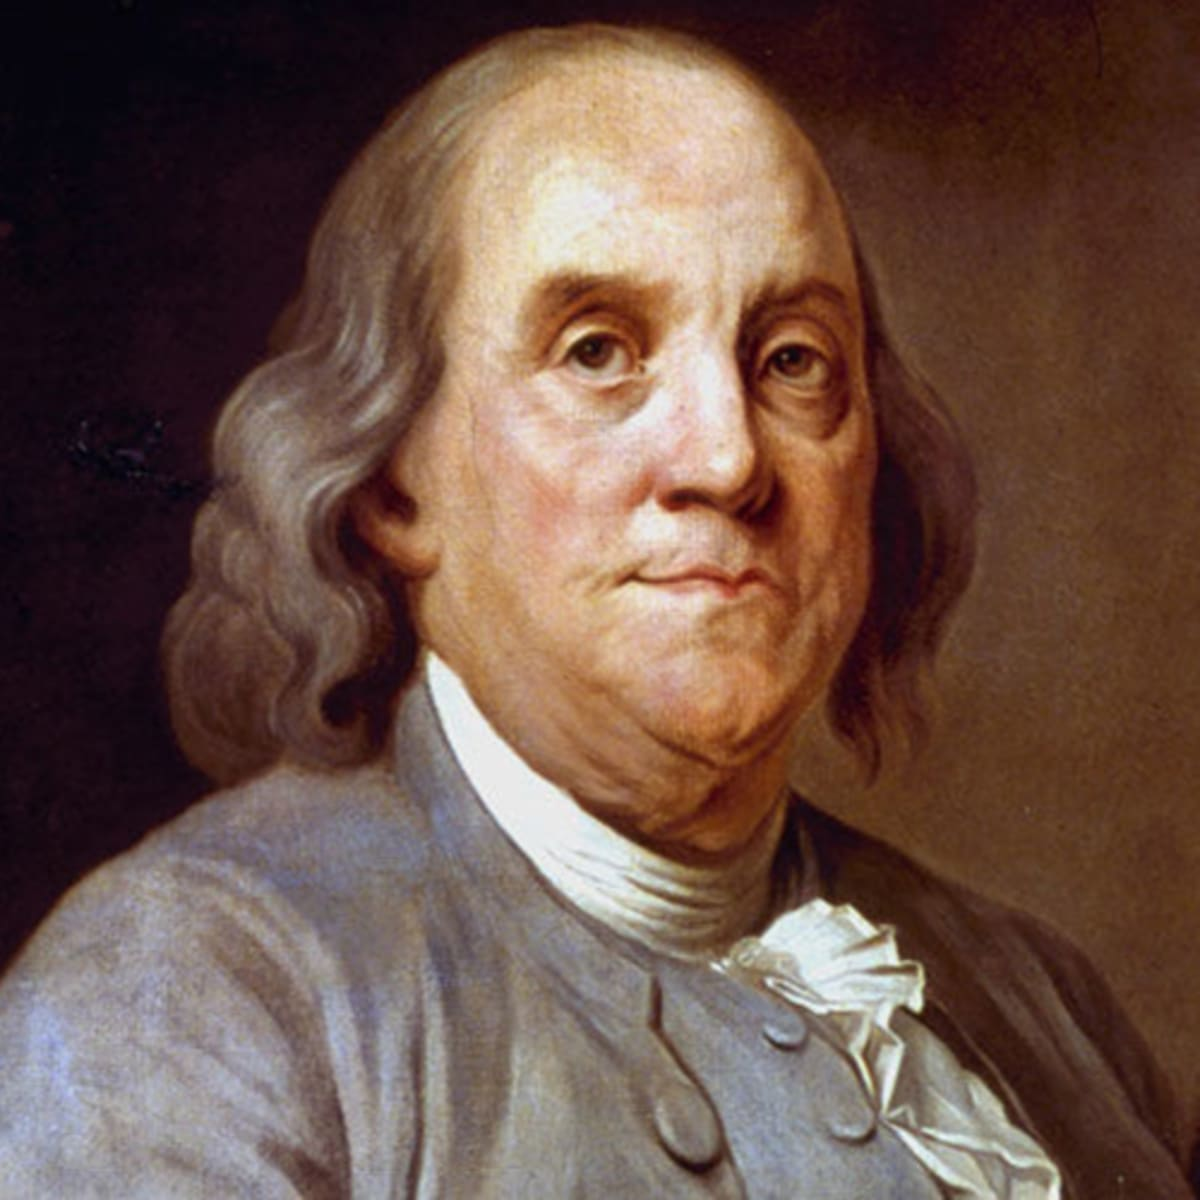 Benjamin Franklin - Quotes, Inventions & Facts - Biography